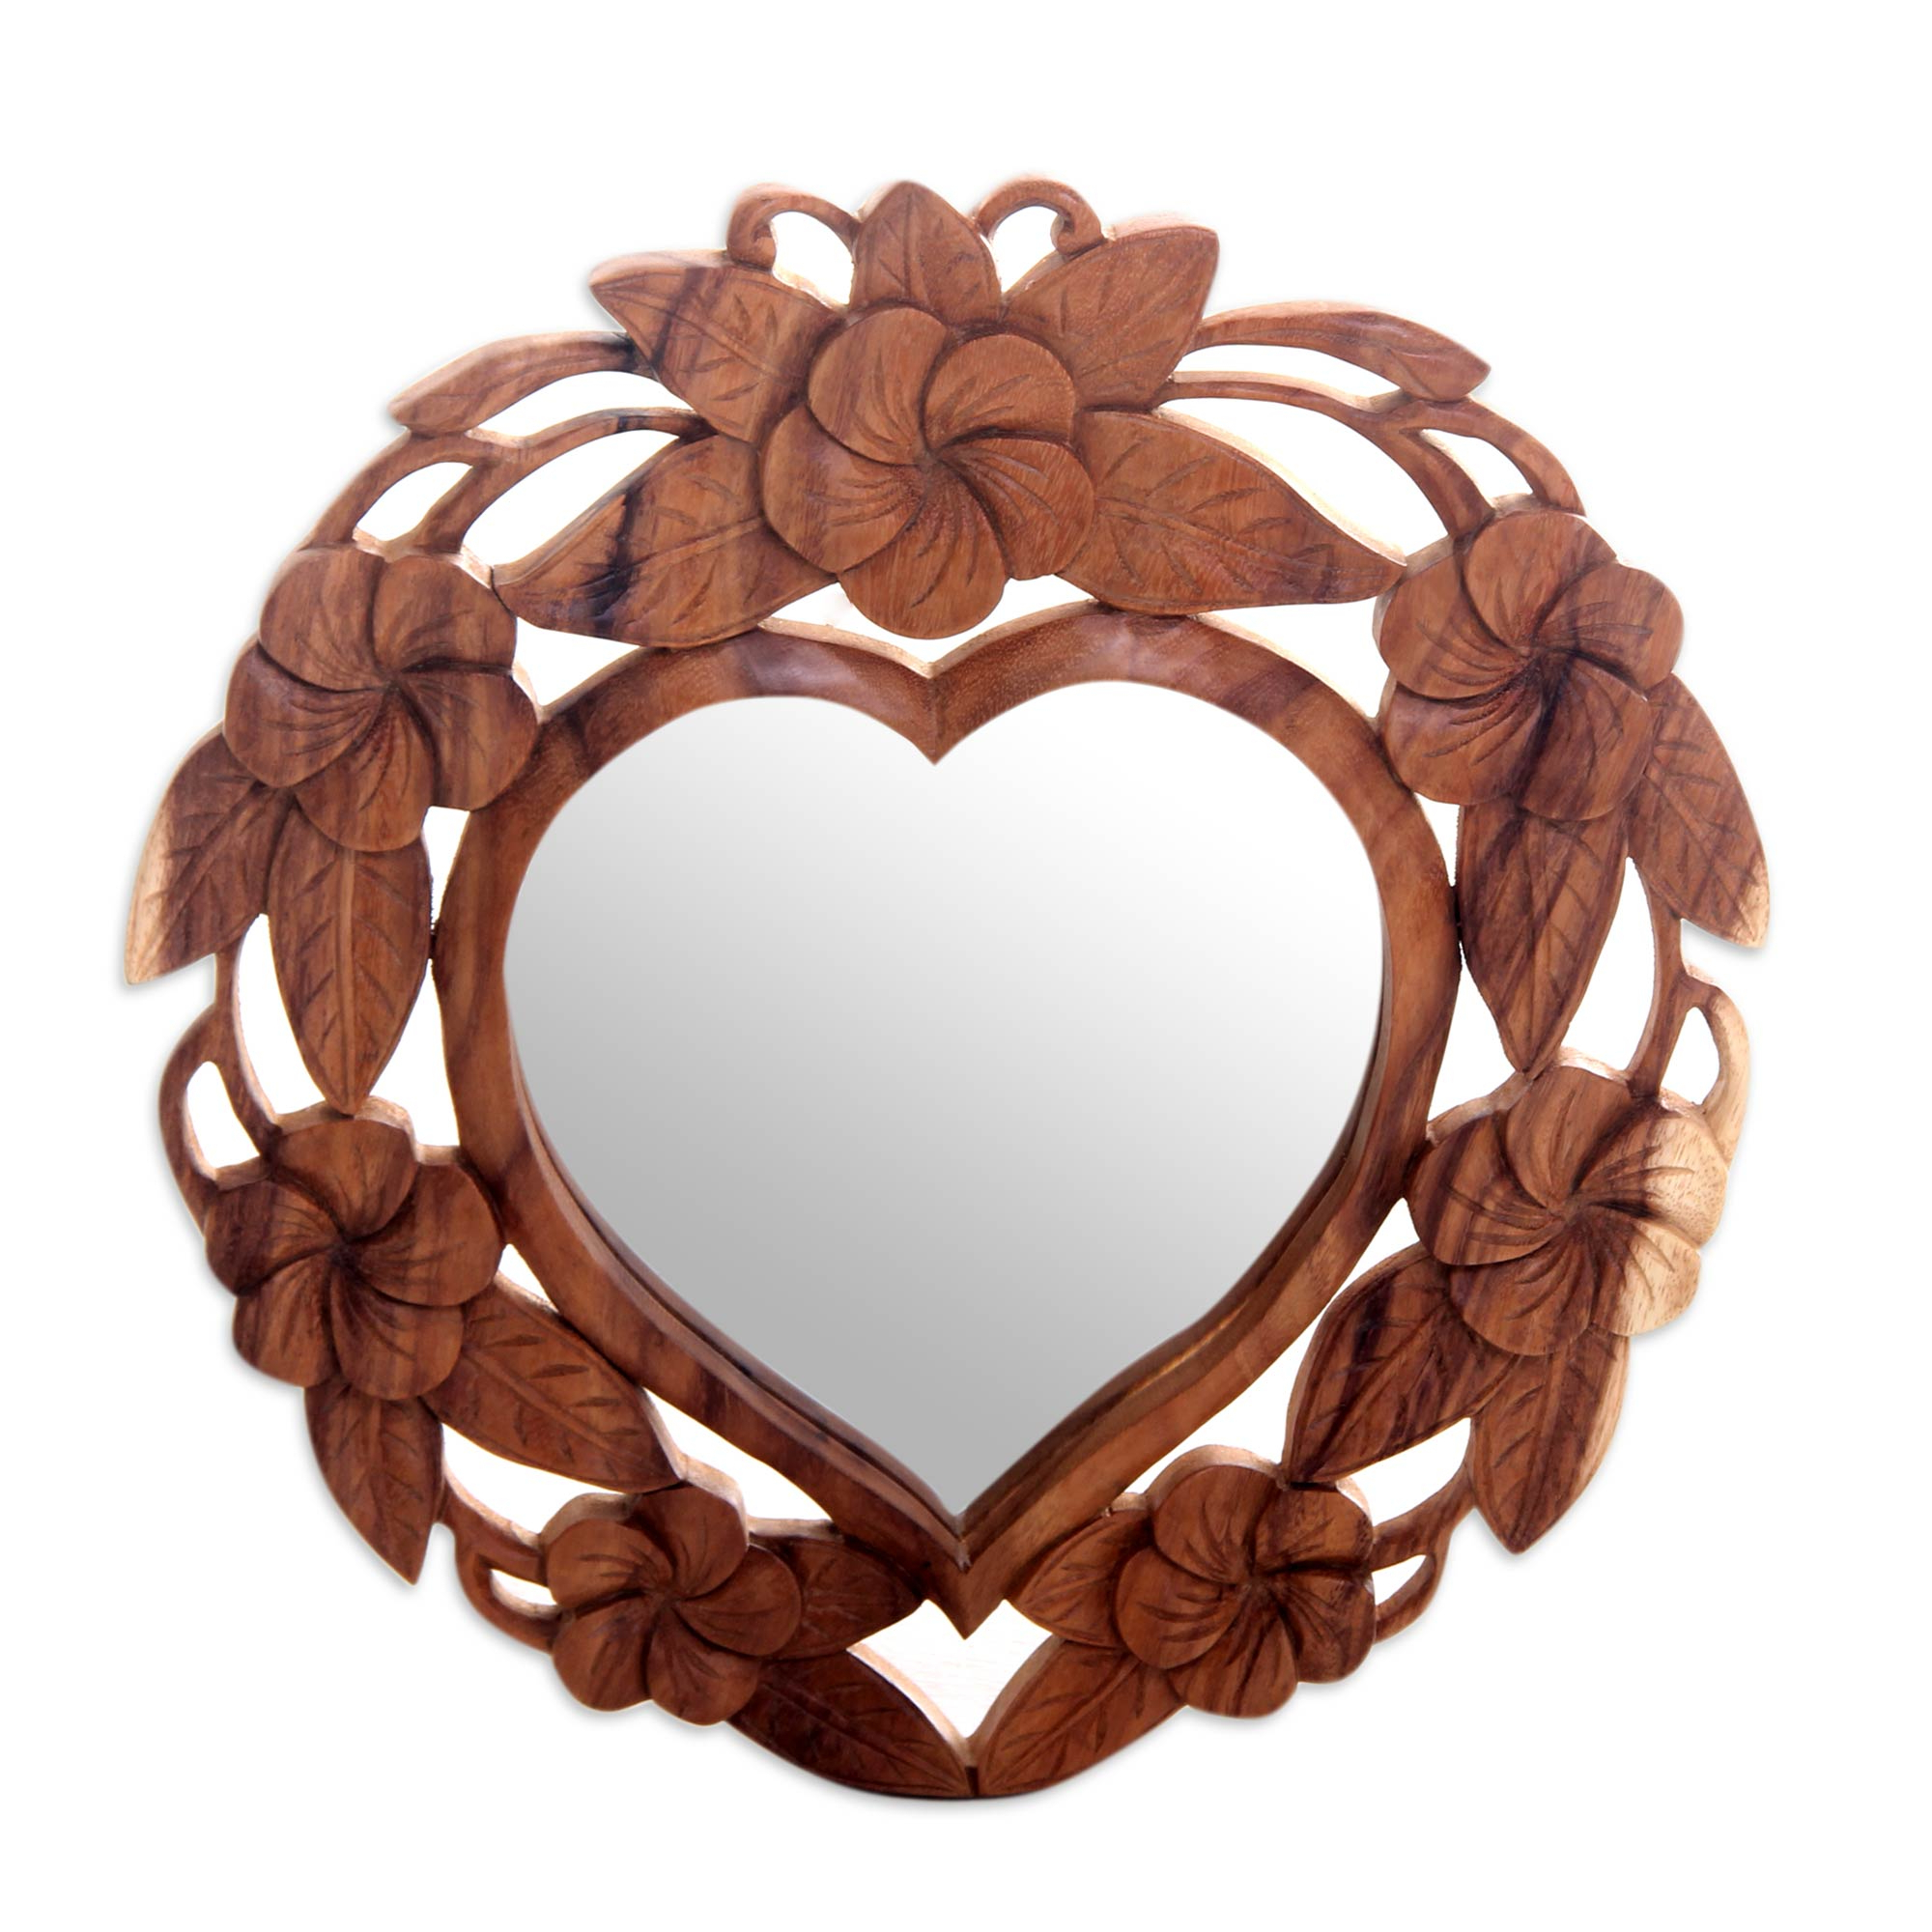 Latest Heart Shaped Wall Mirrors Pertaining To Heart Shaped Wood Wall Mirror With Floral Motif, 'frangipani Heart' (View 12 of 20)